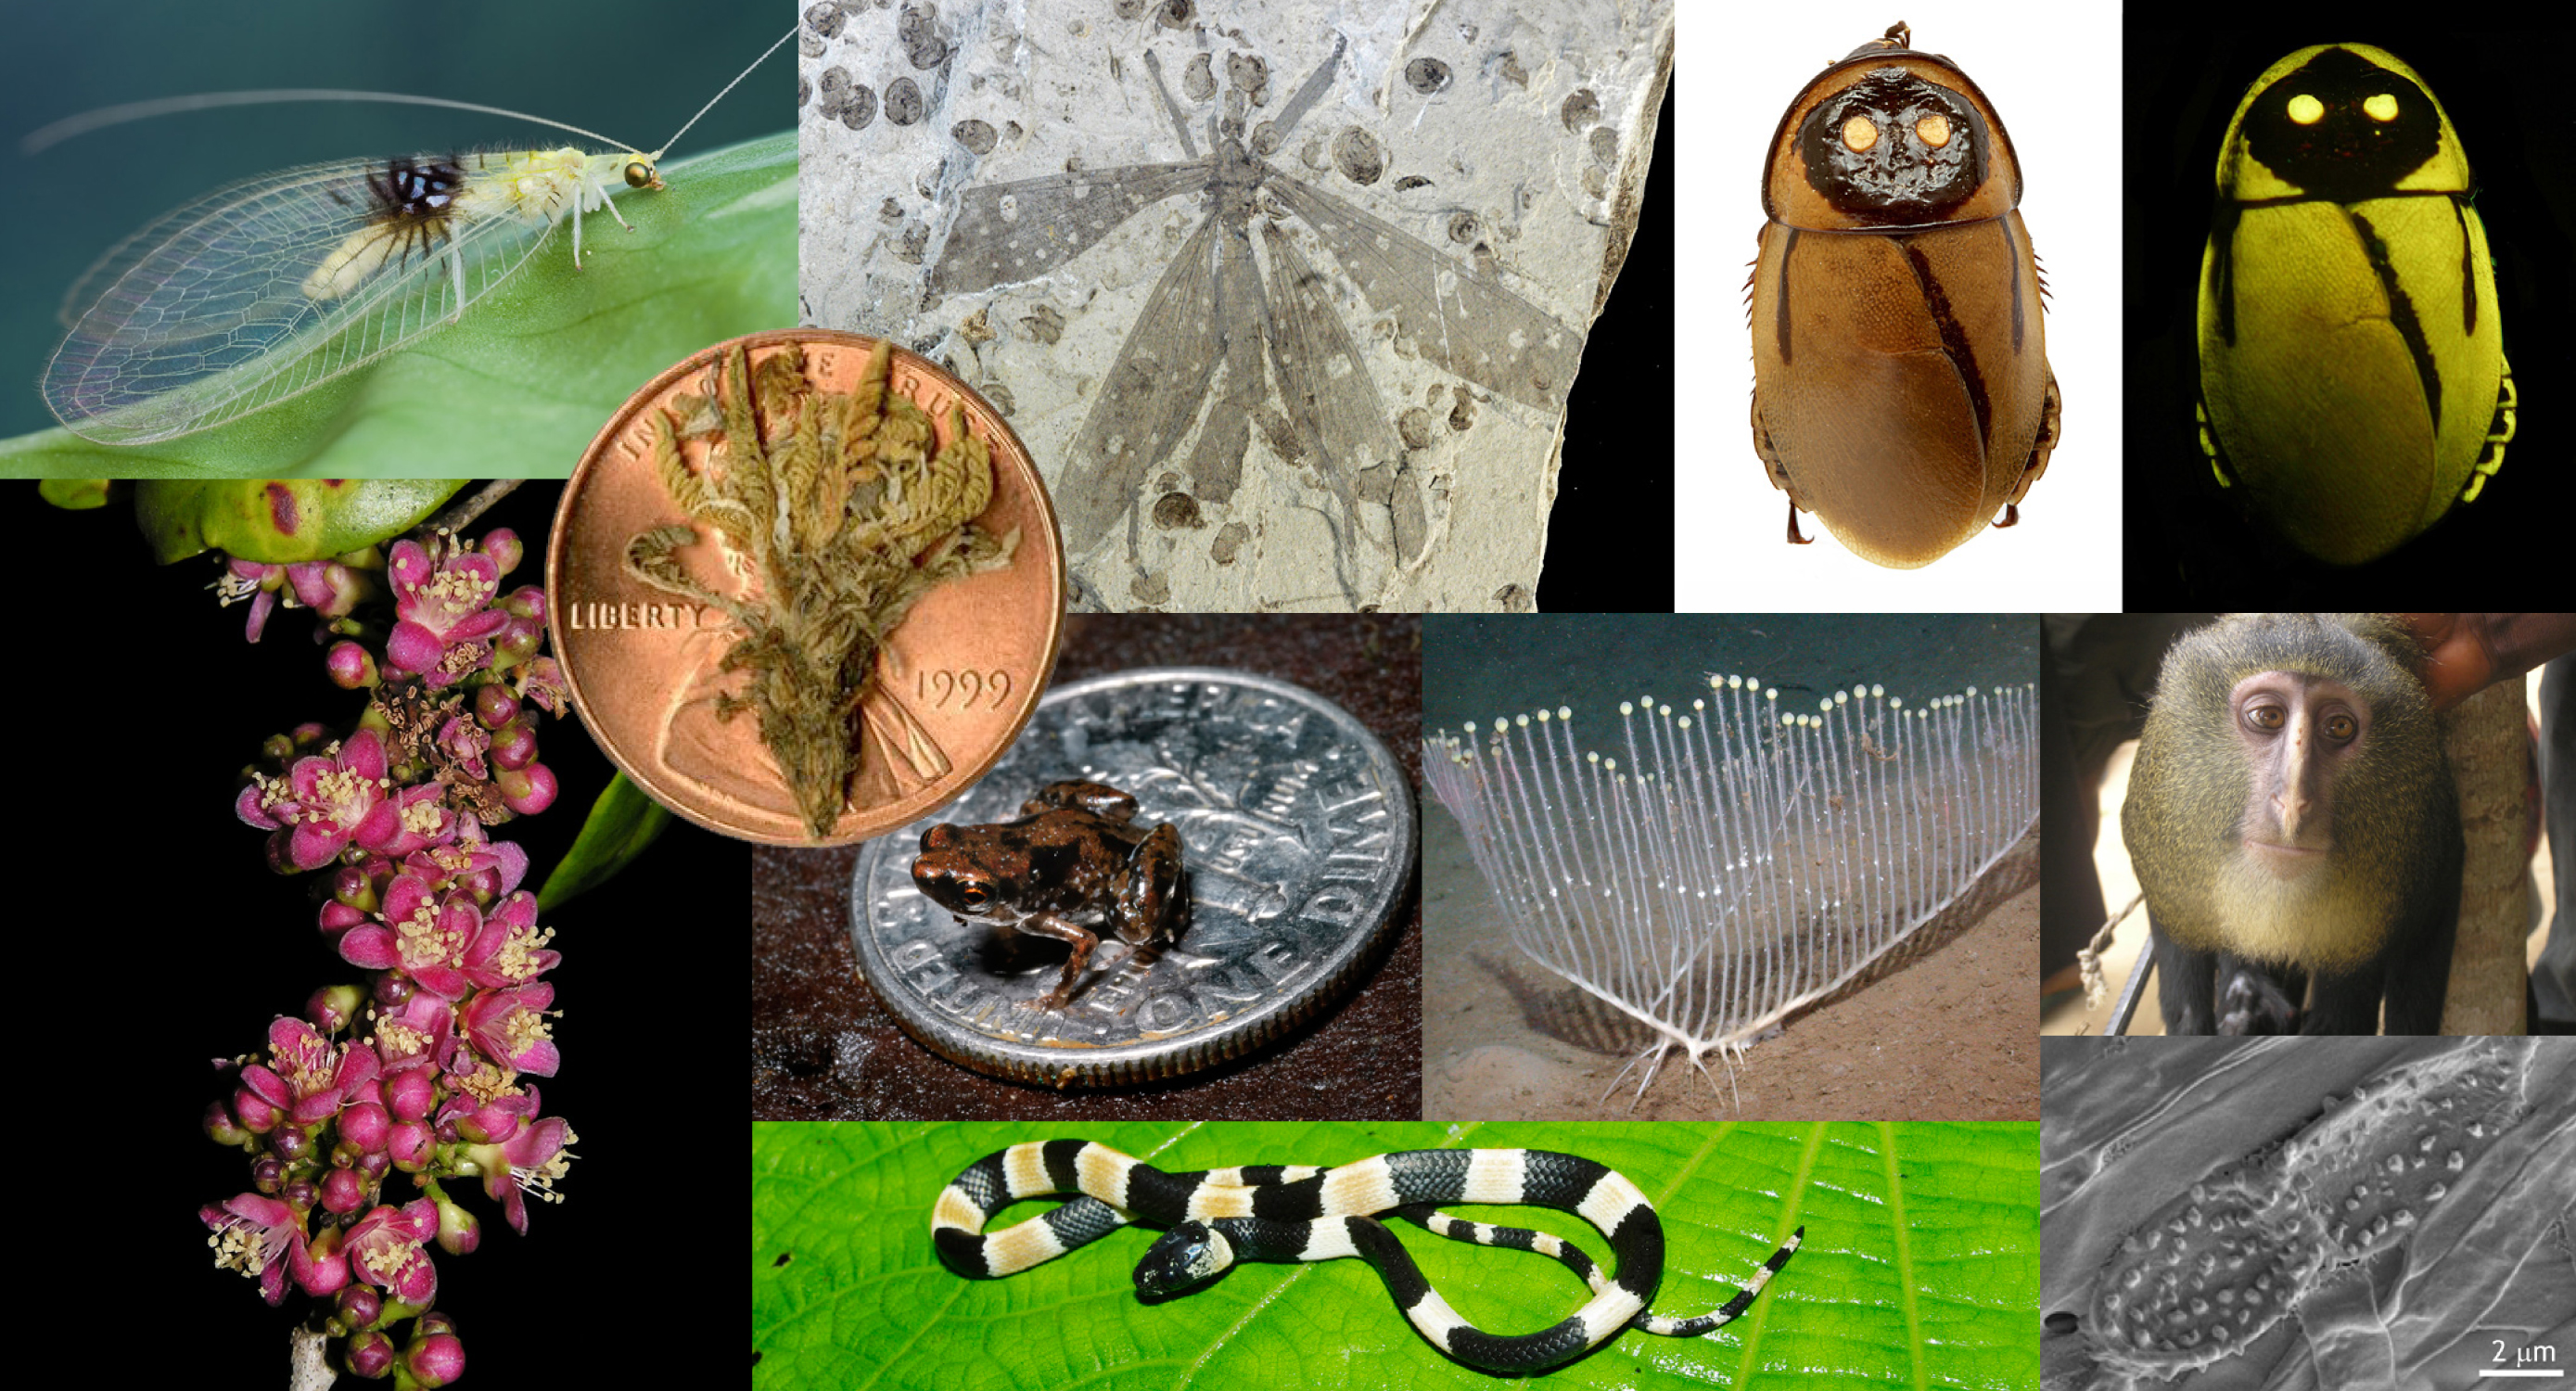 Top 10 new discovered species for 2012